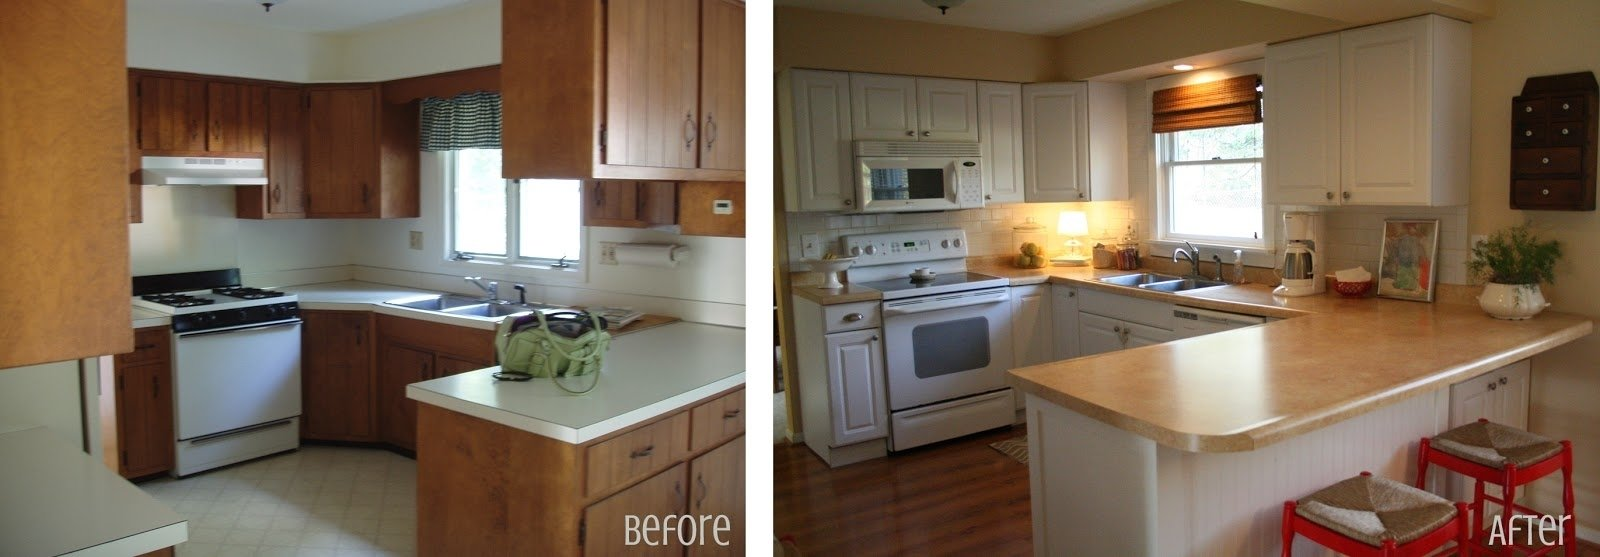 home furnitures sets : kitchen remodel photos before and after the